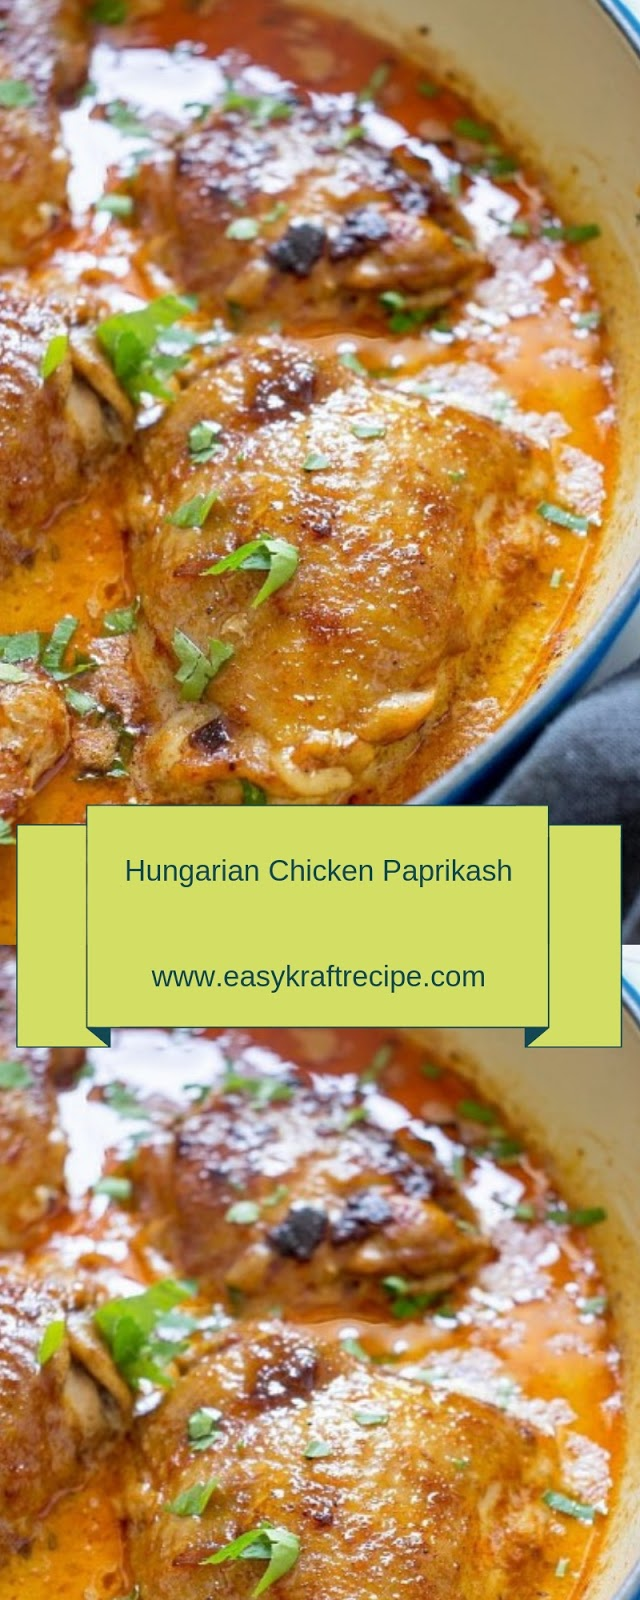 Permalink to Hungarian Chicken Paprikash – Easy Kraft Recipes